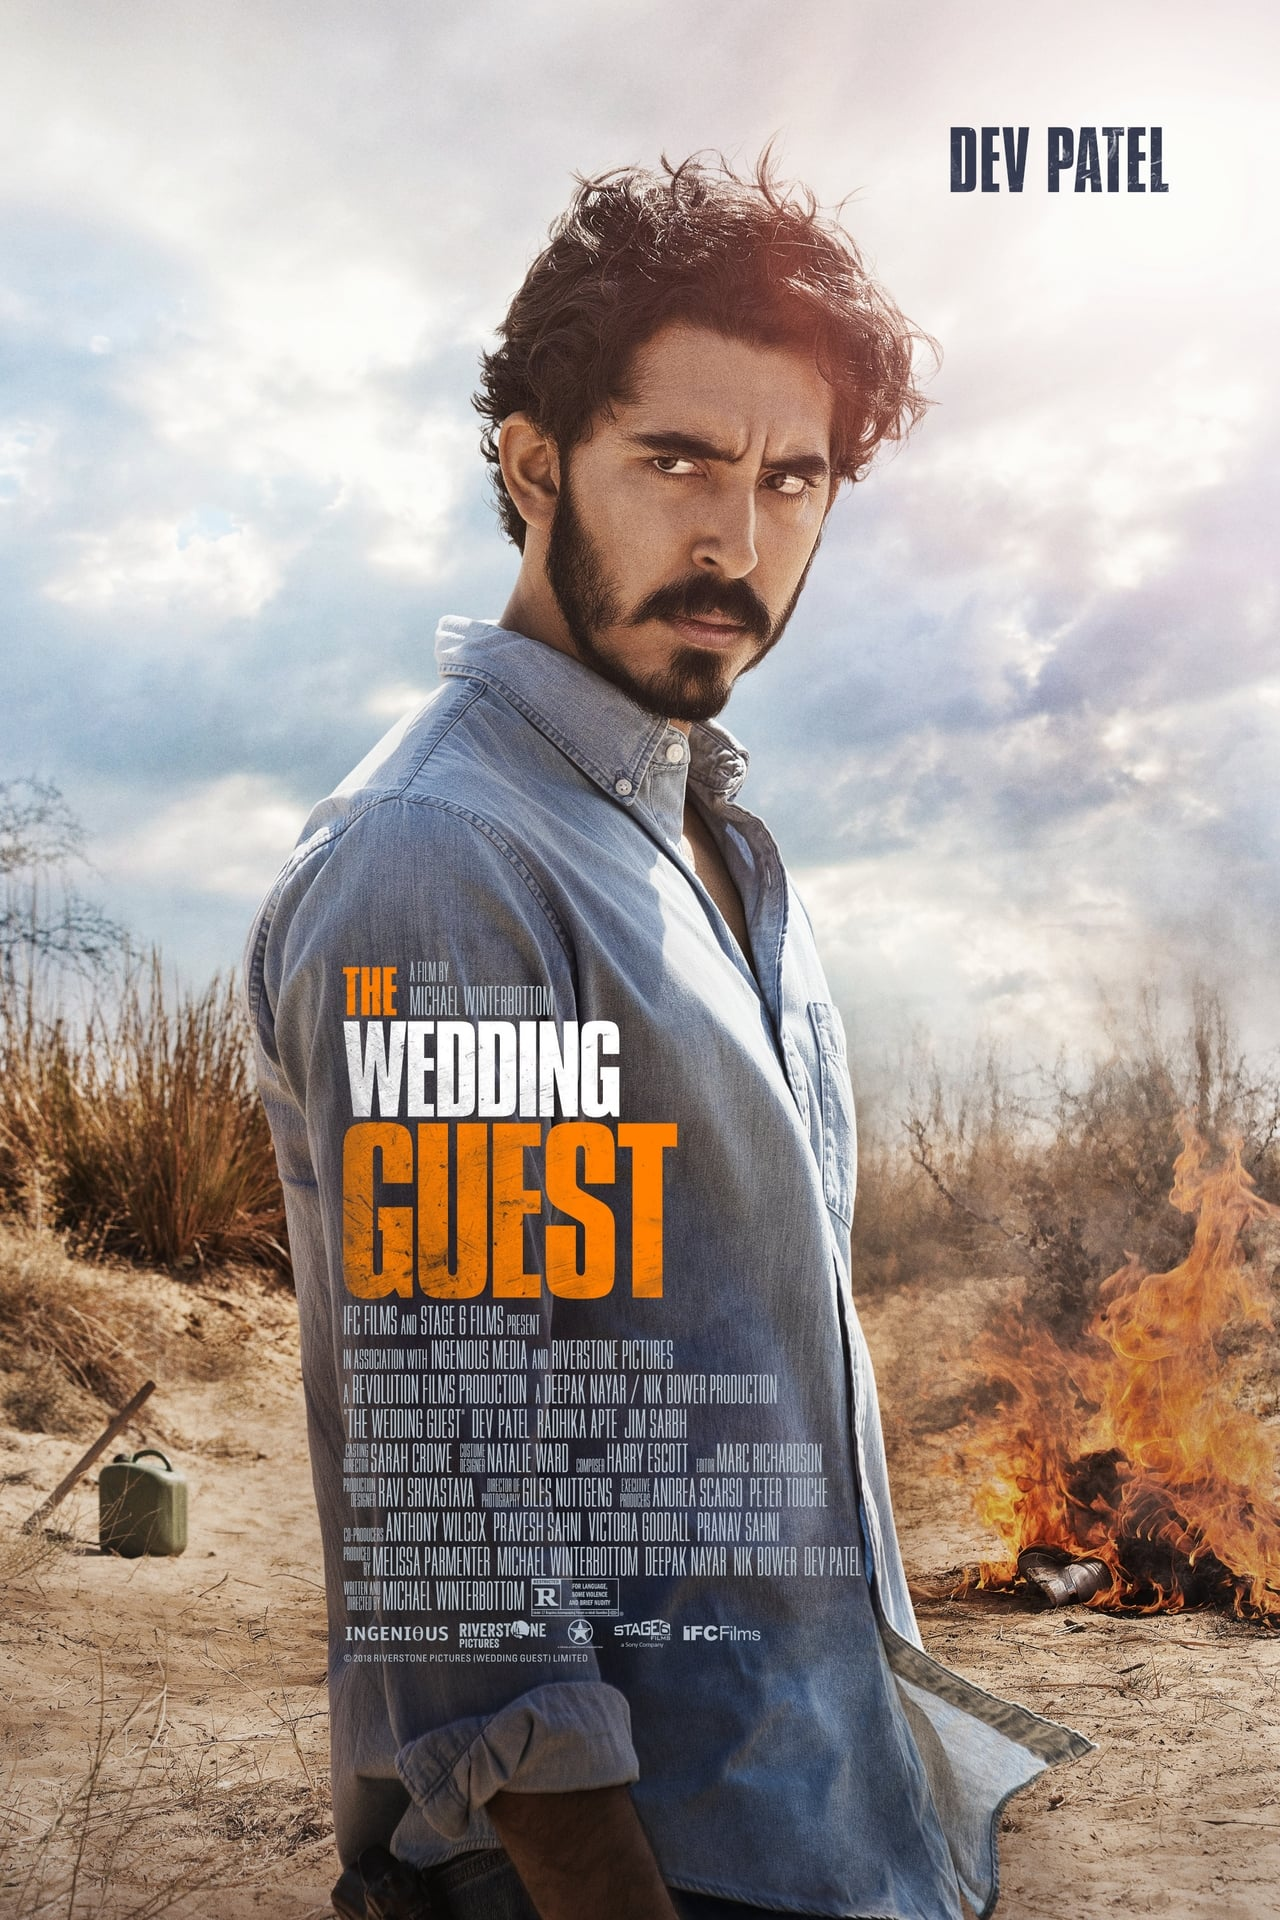 The Wedding Guest image